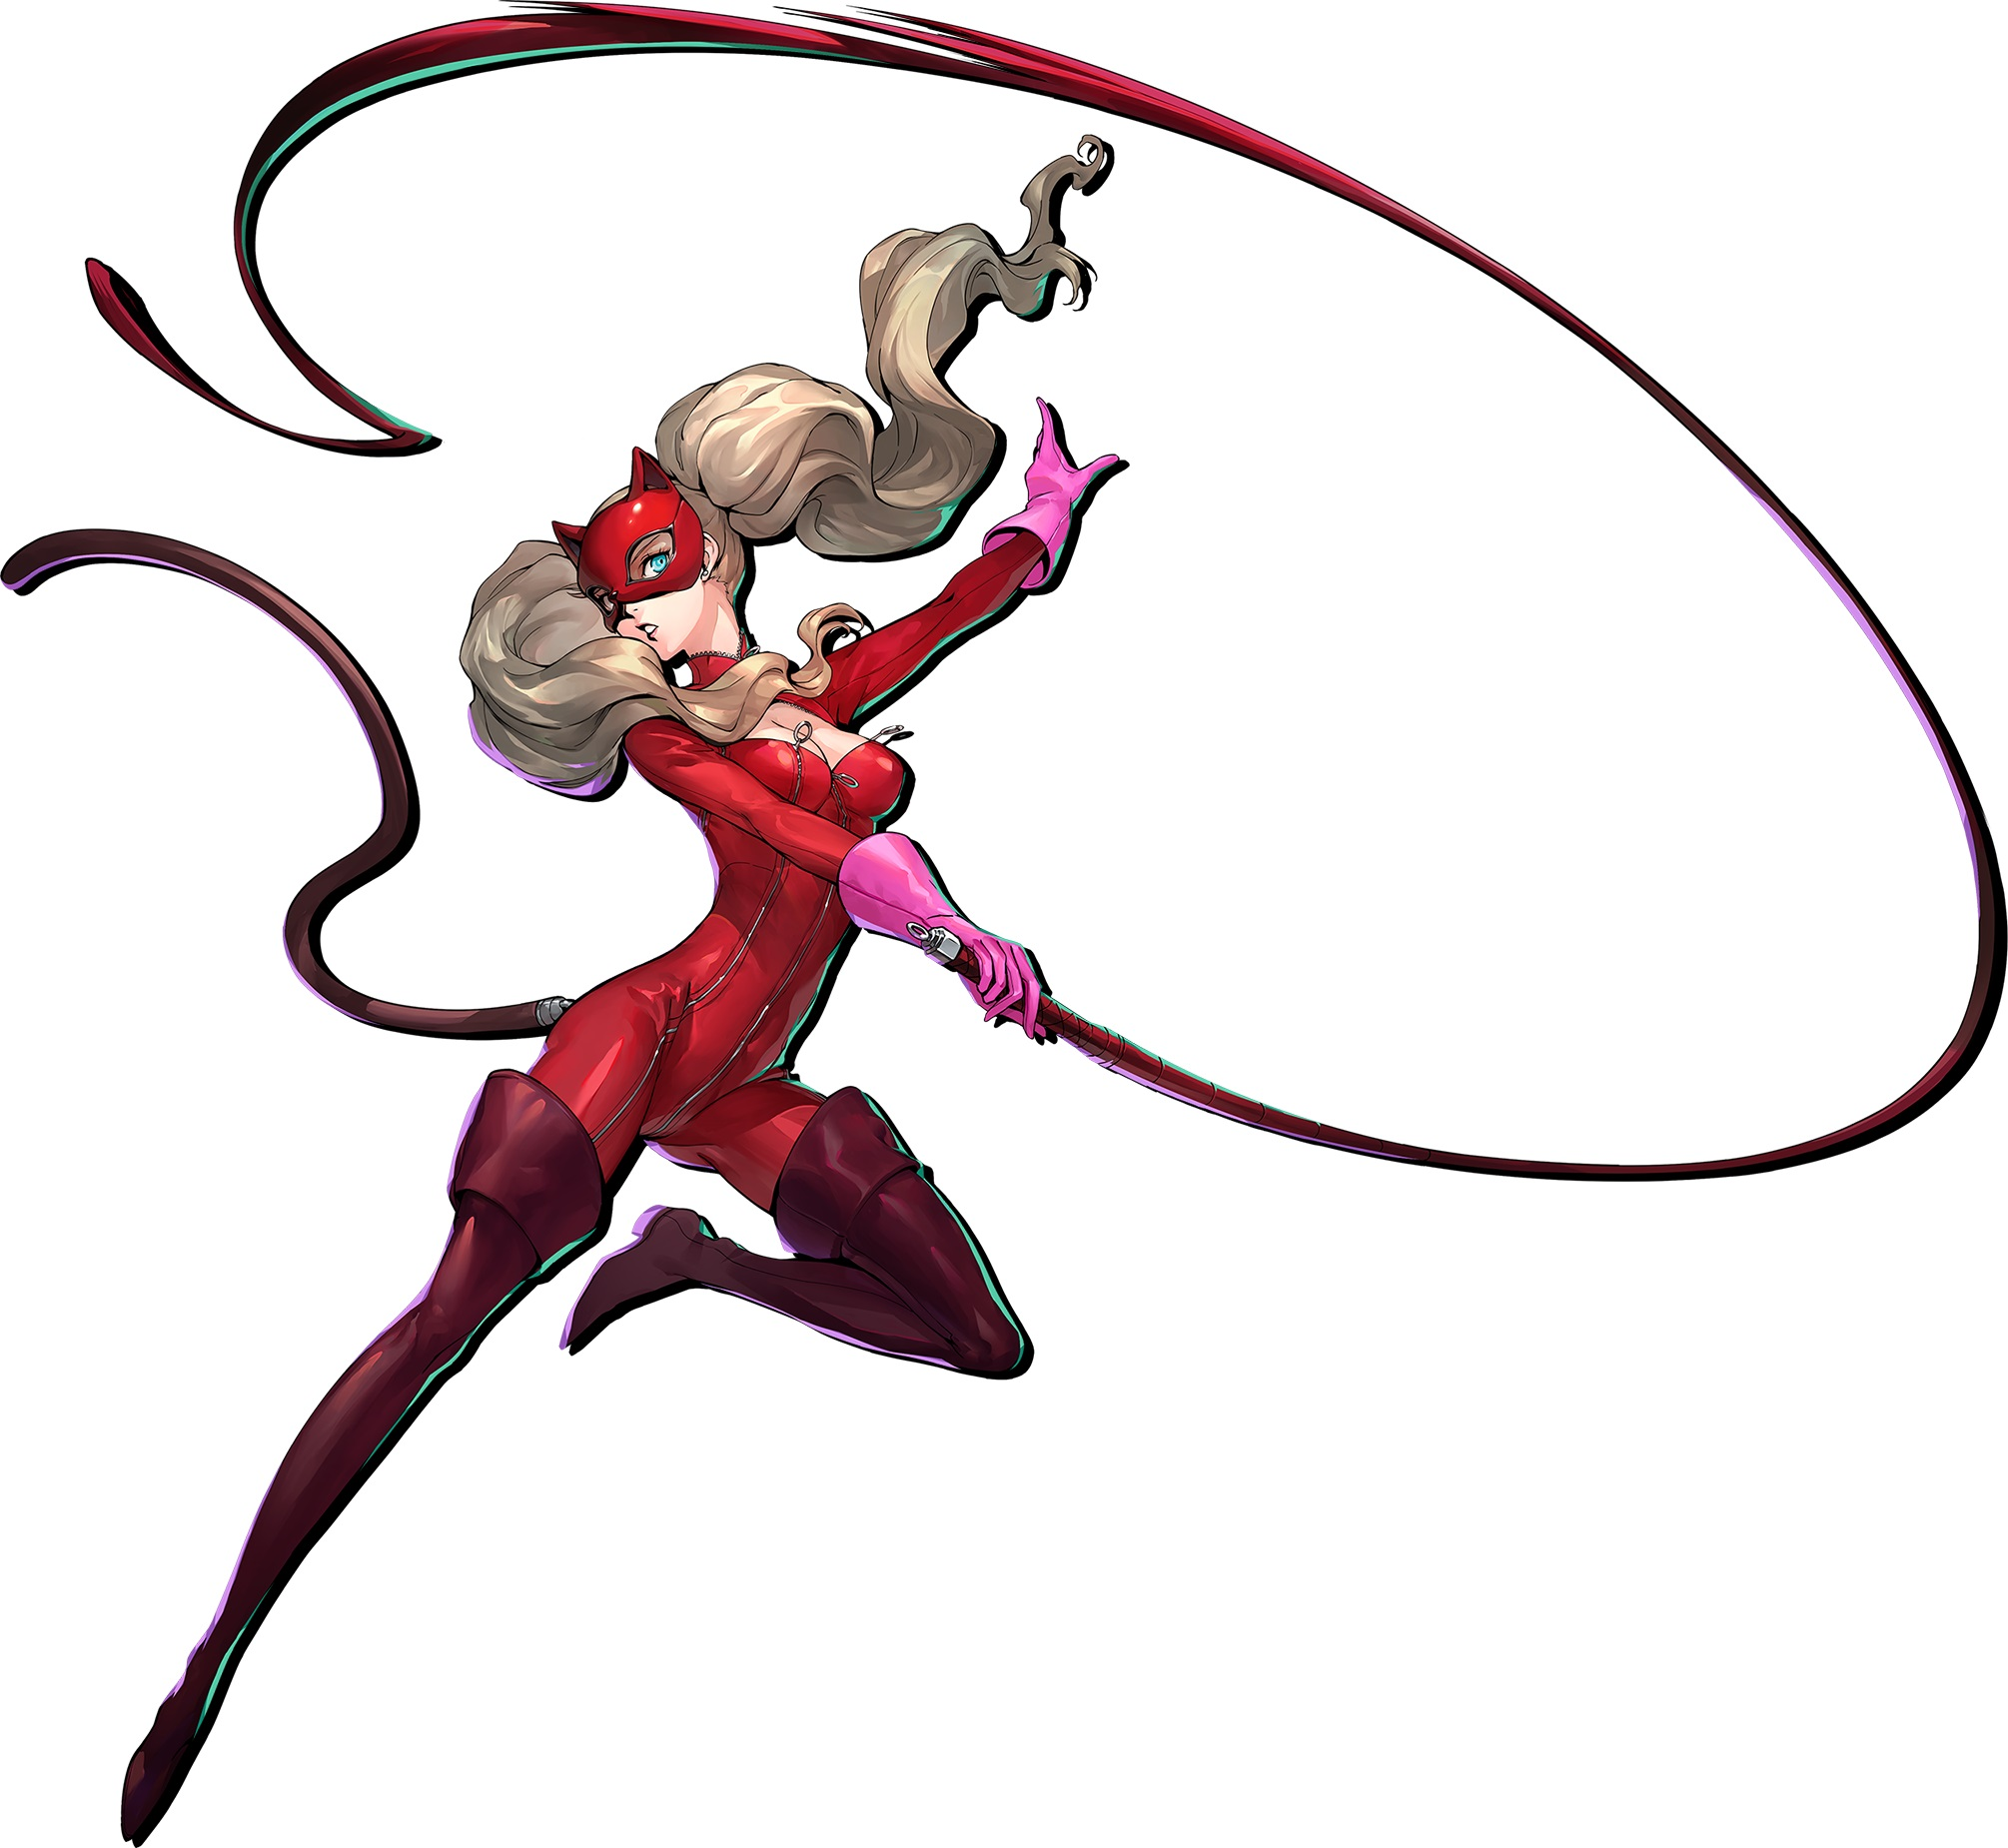 Persona 5 Scramble The Phantom Strikers Details And